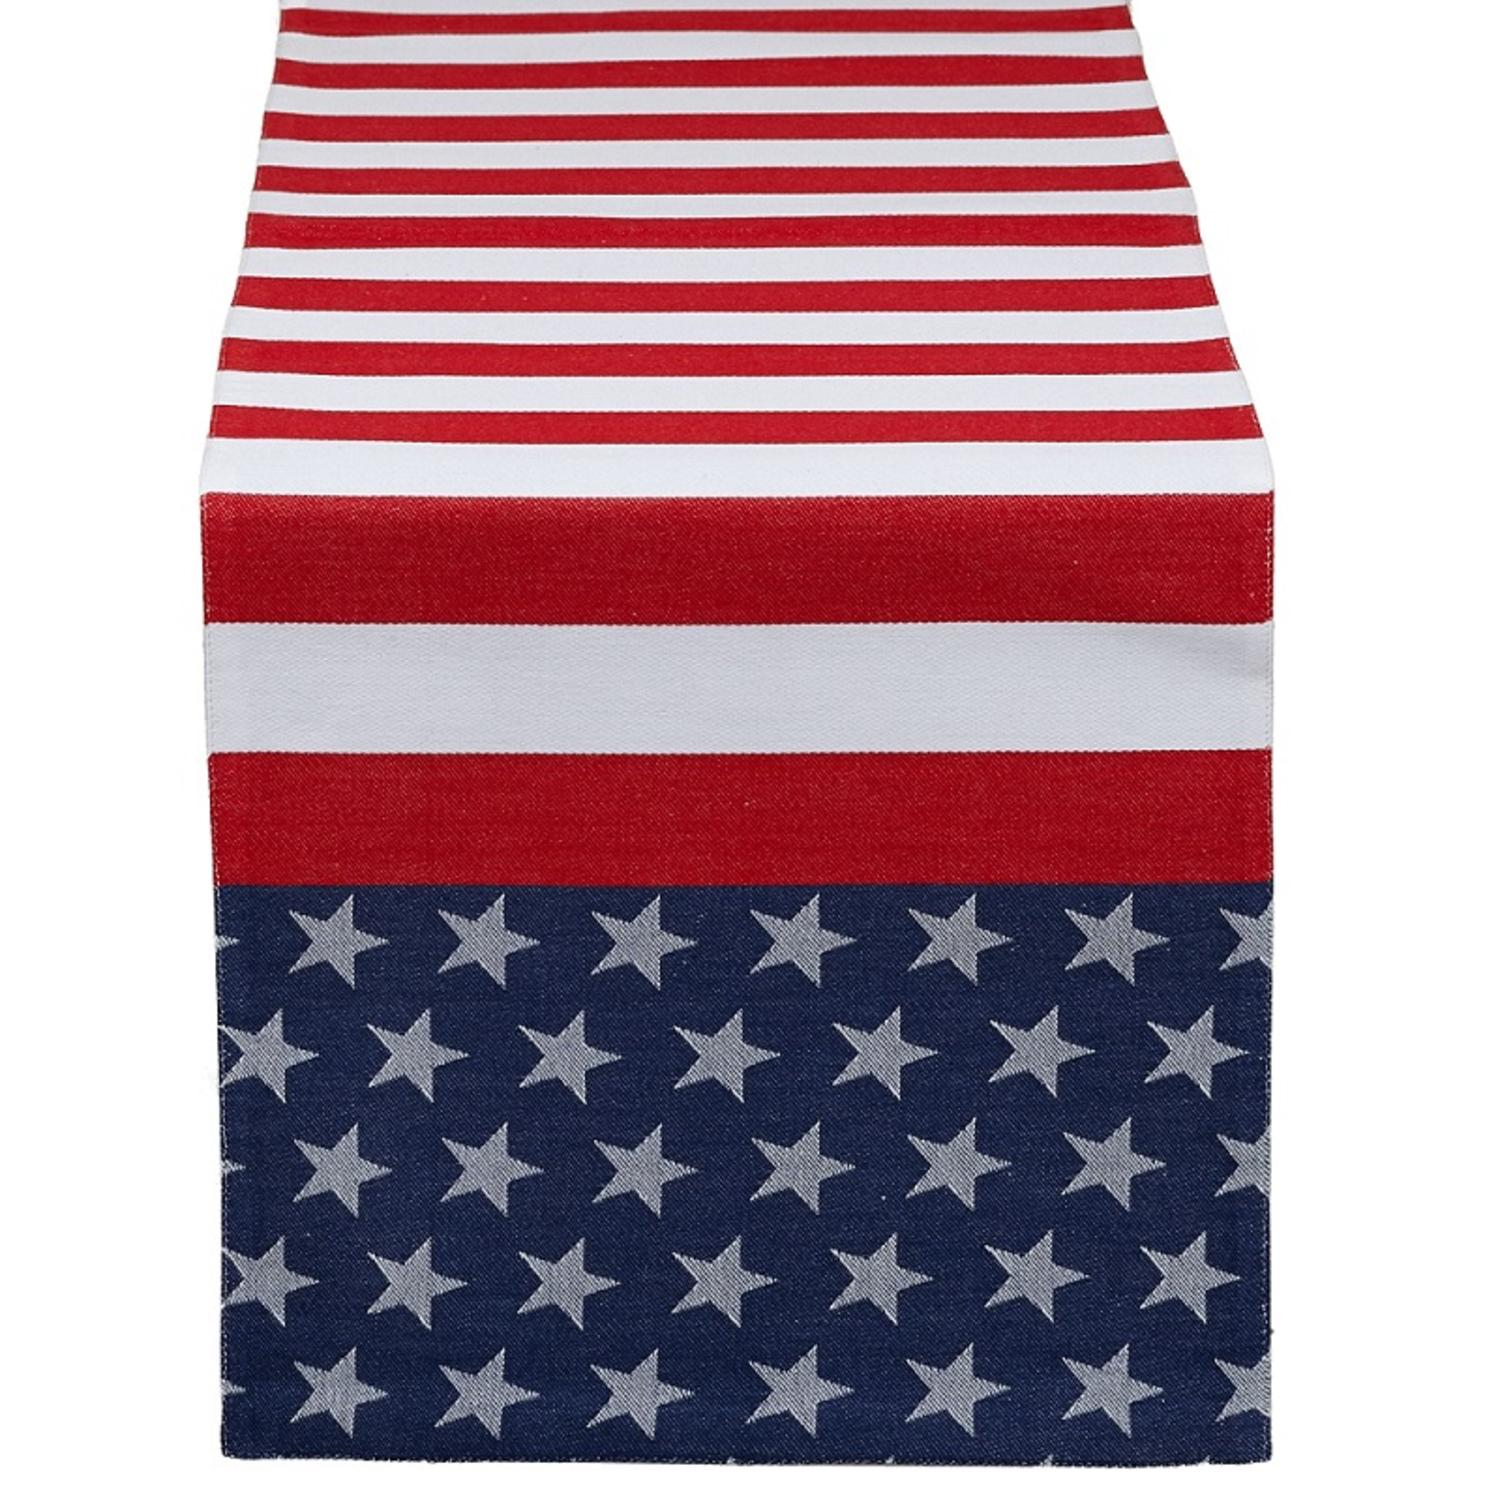 "54"" Patriotic Red, White and Blue American Flag Jacquard Table Runner"